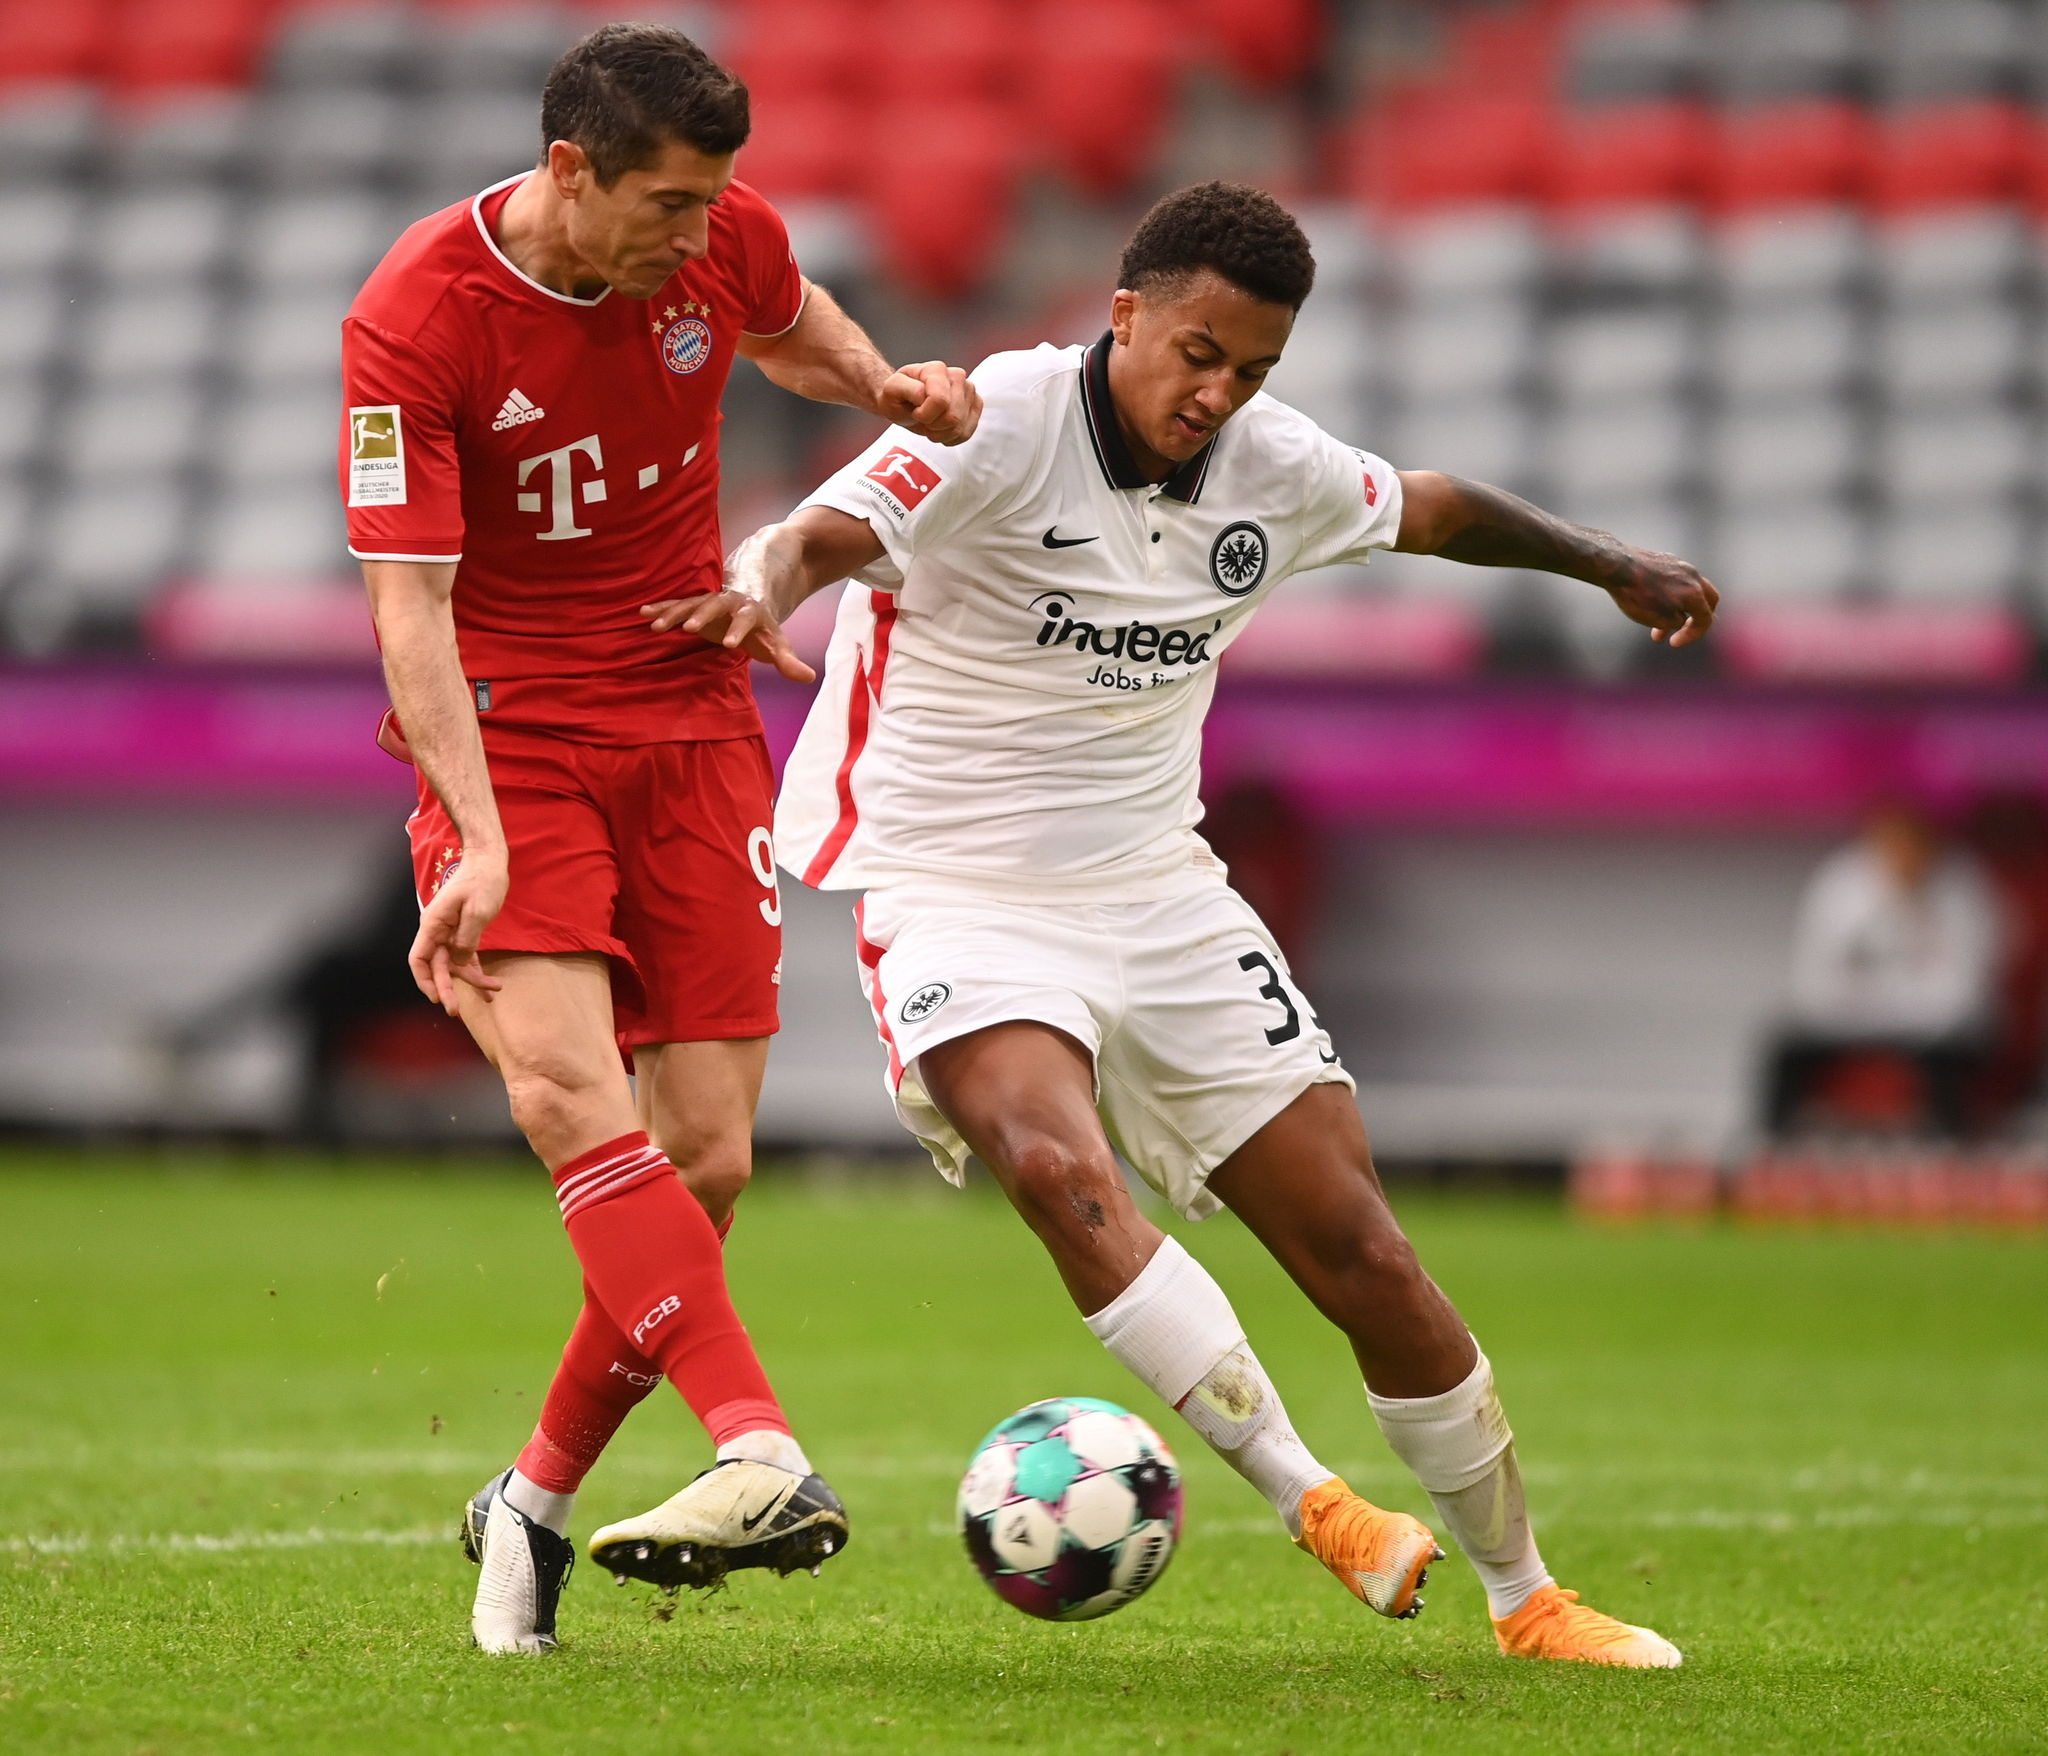 Munich (Germany), 24/10/2020.- Bayerns Robert lt;HIT gt;Lewandowski lt;/HIT gt; (L) scores the 3-0 goal against Frankfurts Tuta during the German Bundesliga soccer match between FC Bayern Munich and Eintracht Frankfurt, in Munich, Germany, 24 October 2020. (Alemania) EFE/EPA/LUKAS BARTH / POOL CONDITIONS - ATTENTION: The DFL regulations prohibit any use of photographs as image sequences and/or quasi-video